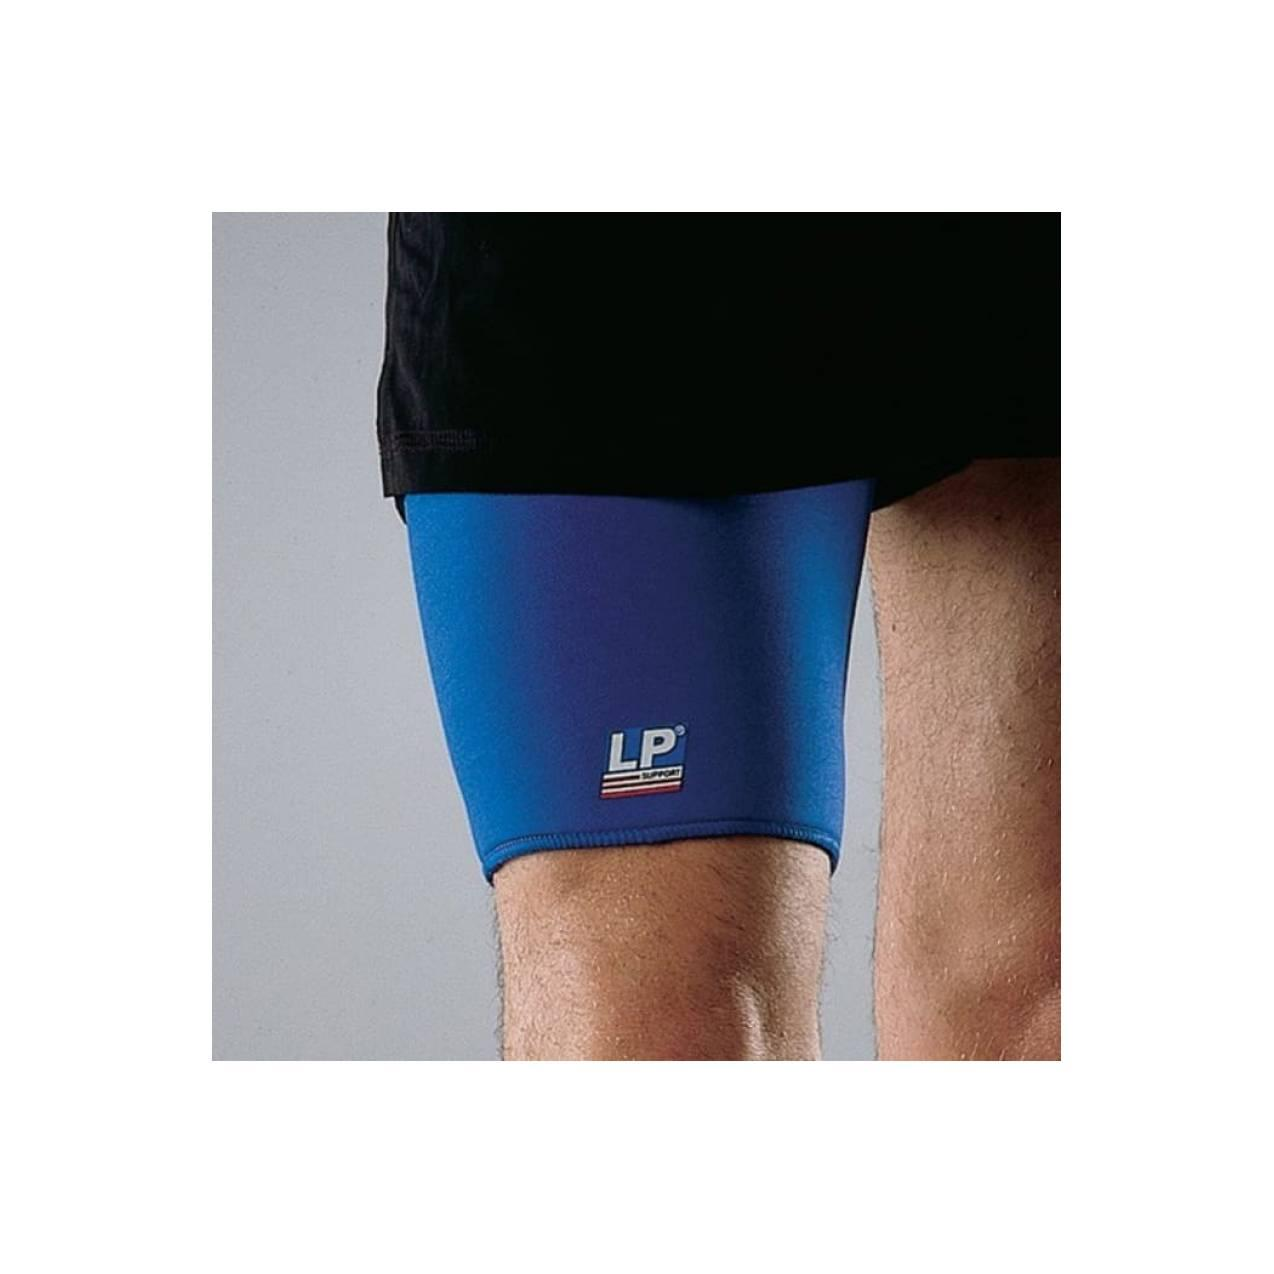 [AGEN RESMI] LP SUPPORT THIGH TAN (UK. L) LP-705-200000163 [100{55e037da9a70d2f692182bf73e9ad7c46940d20c7297ef2687c837f7bdb7b002}